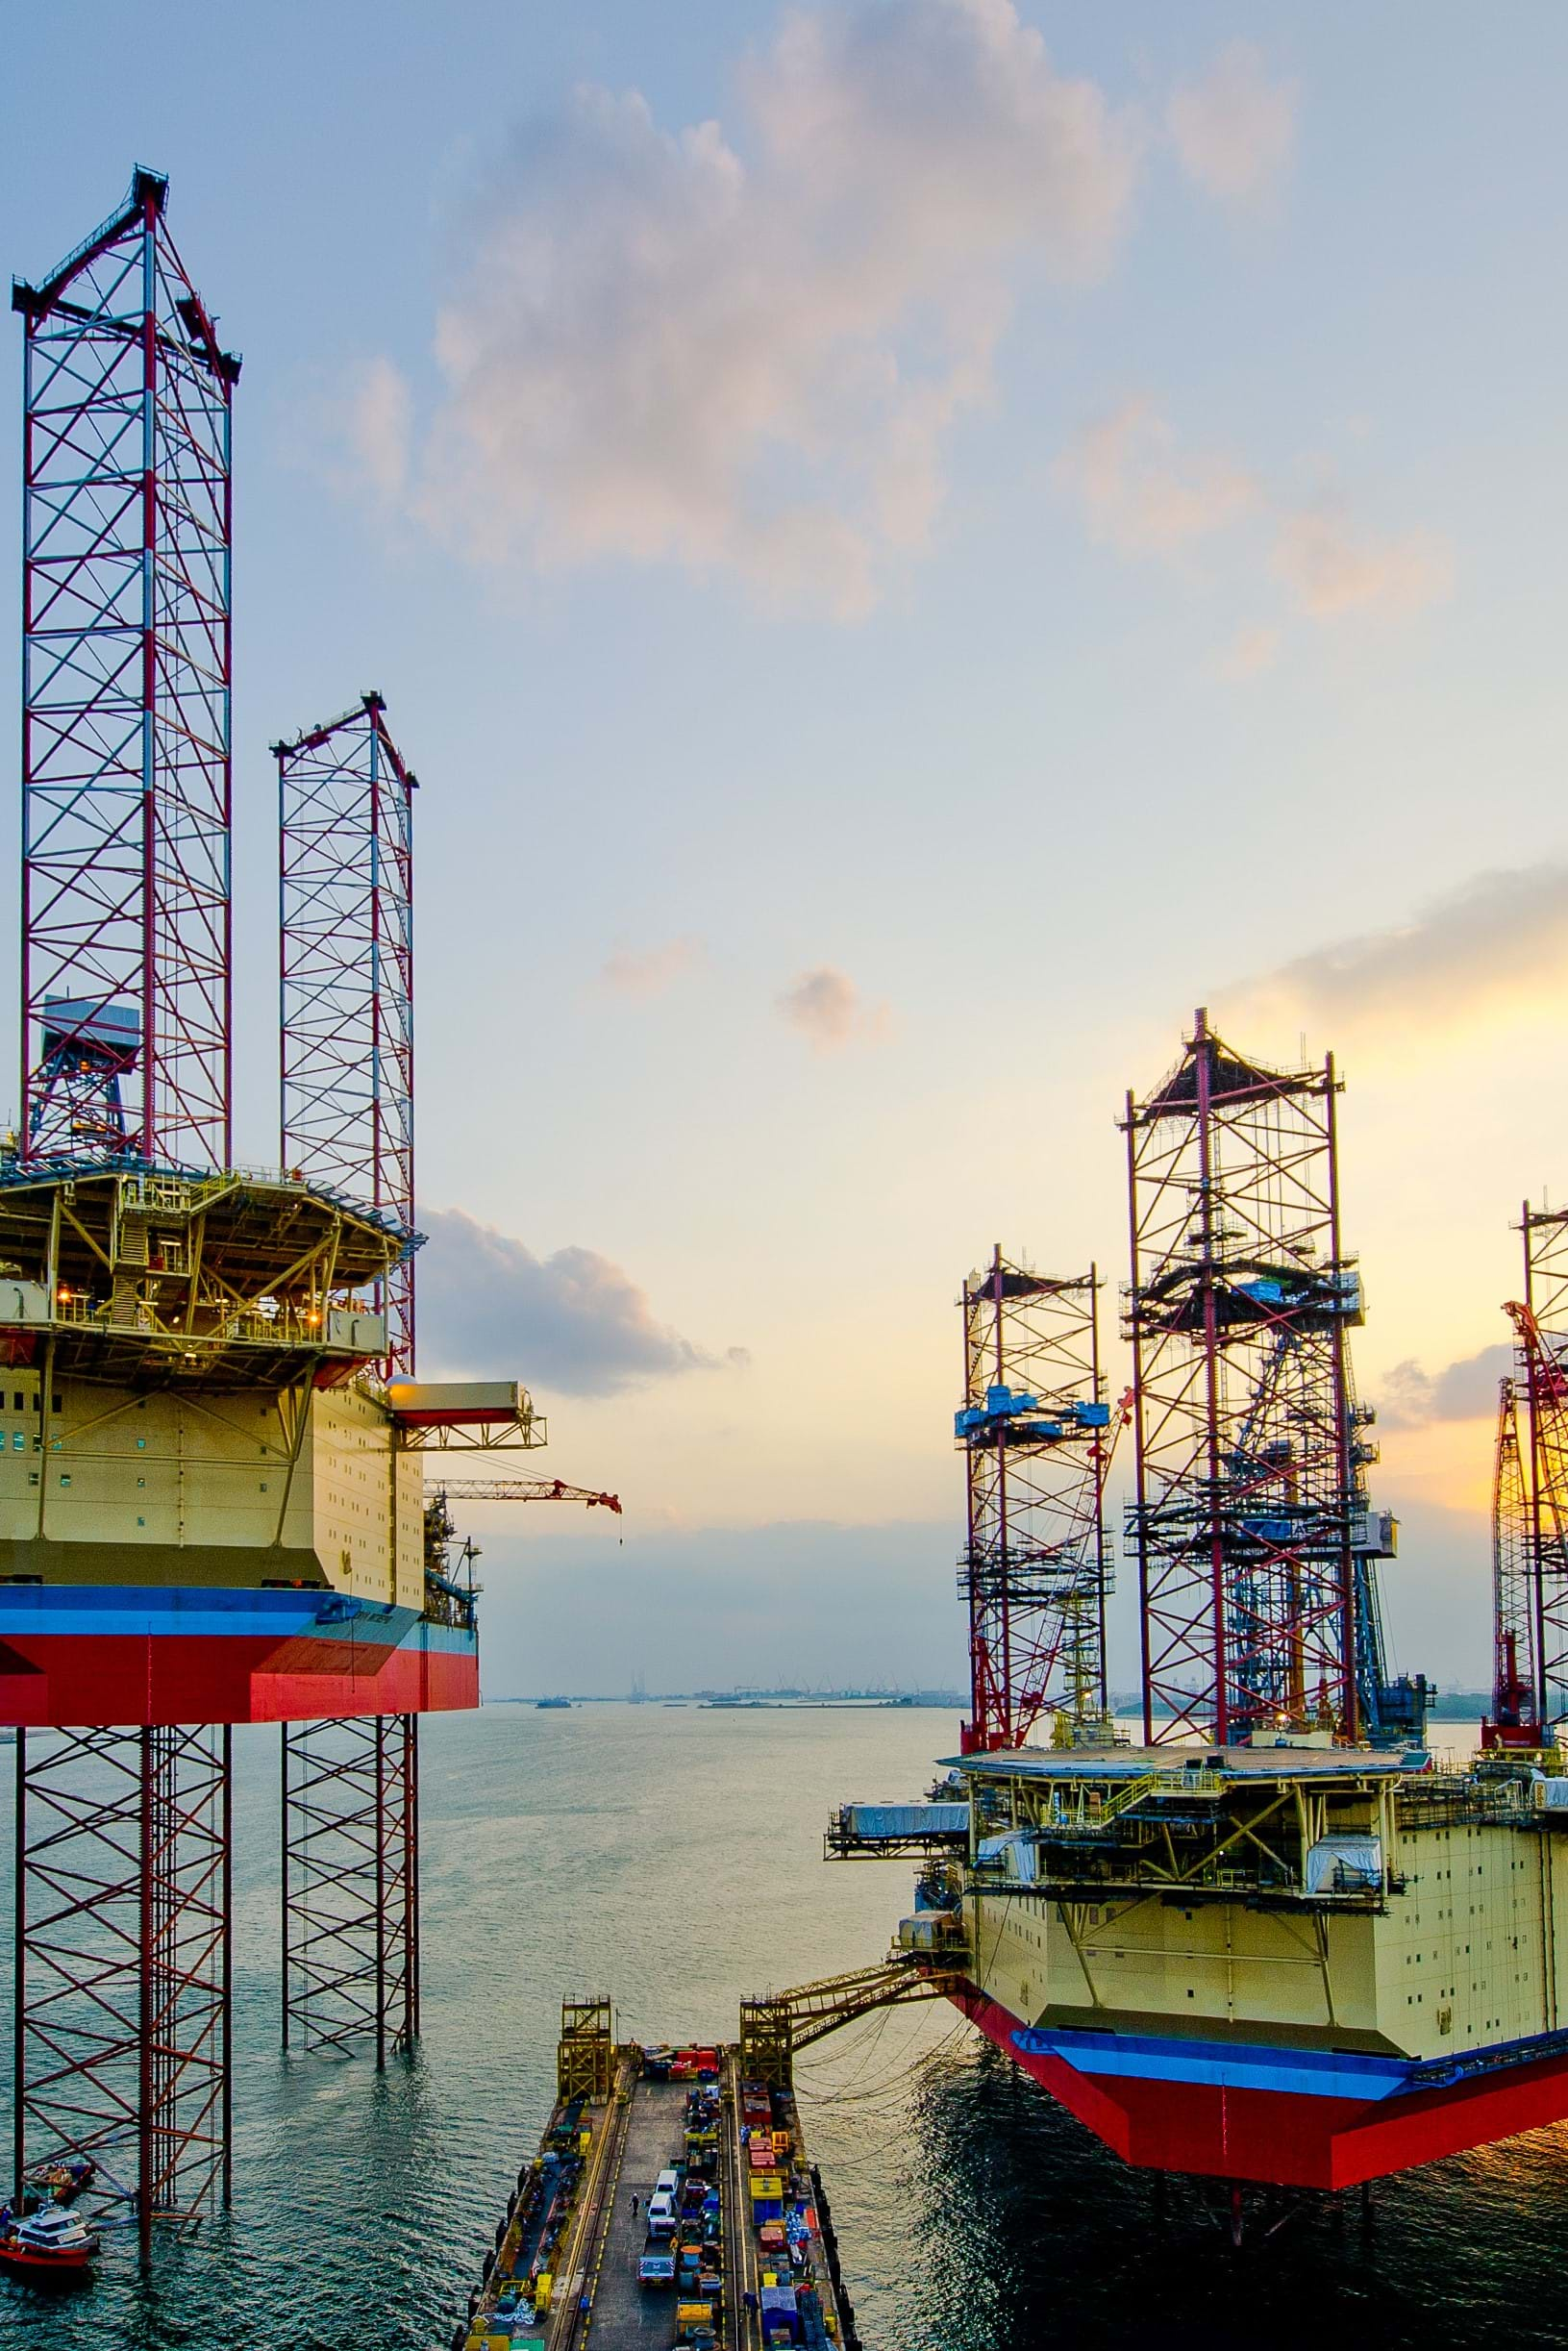 Maersk Drilling industry | Maersk Drilling